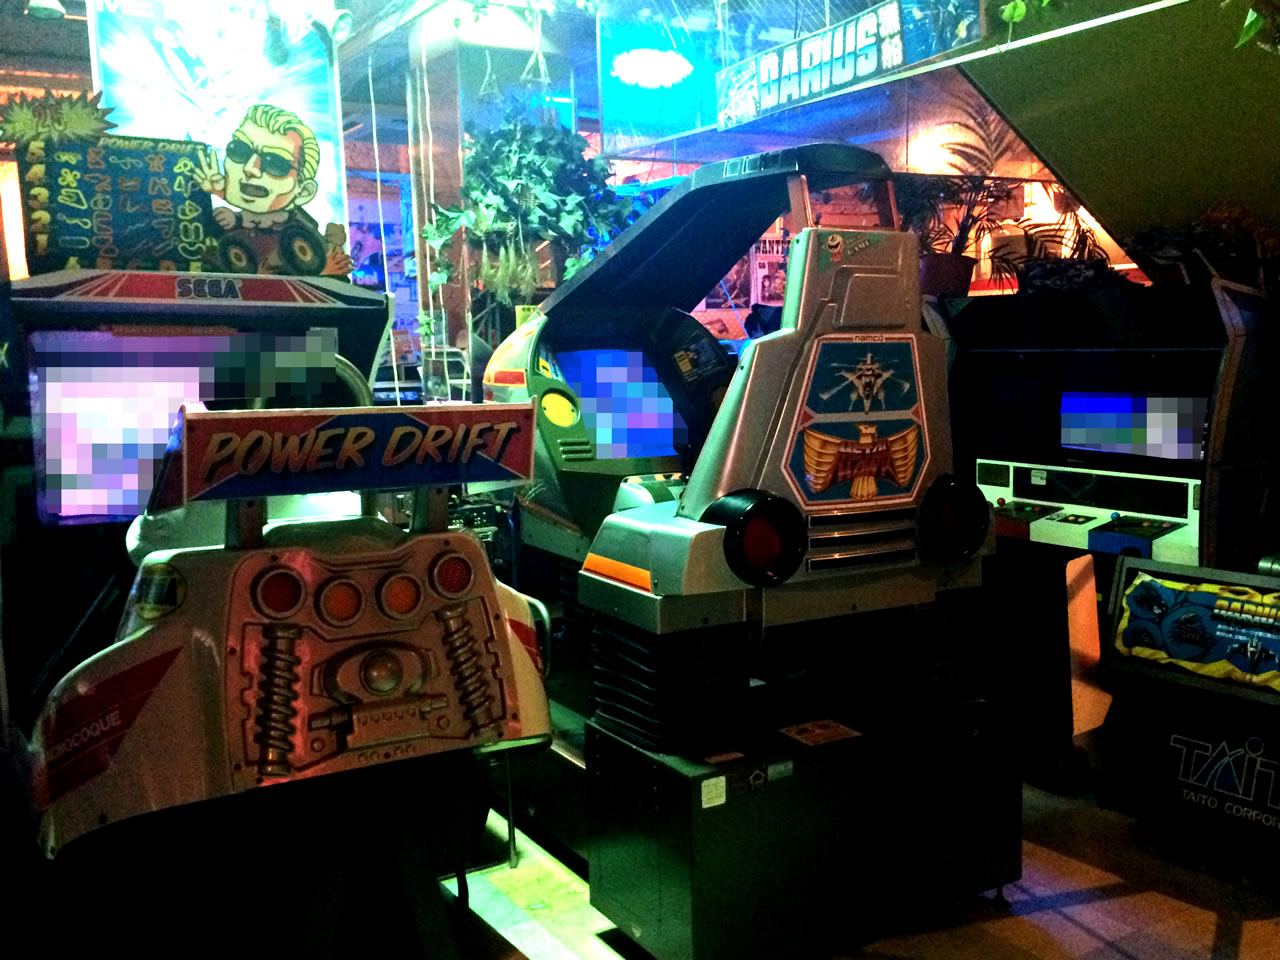 arcade-game-centers-are-becoming-museum-sp-001-002